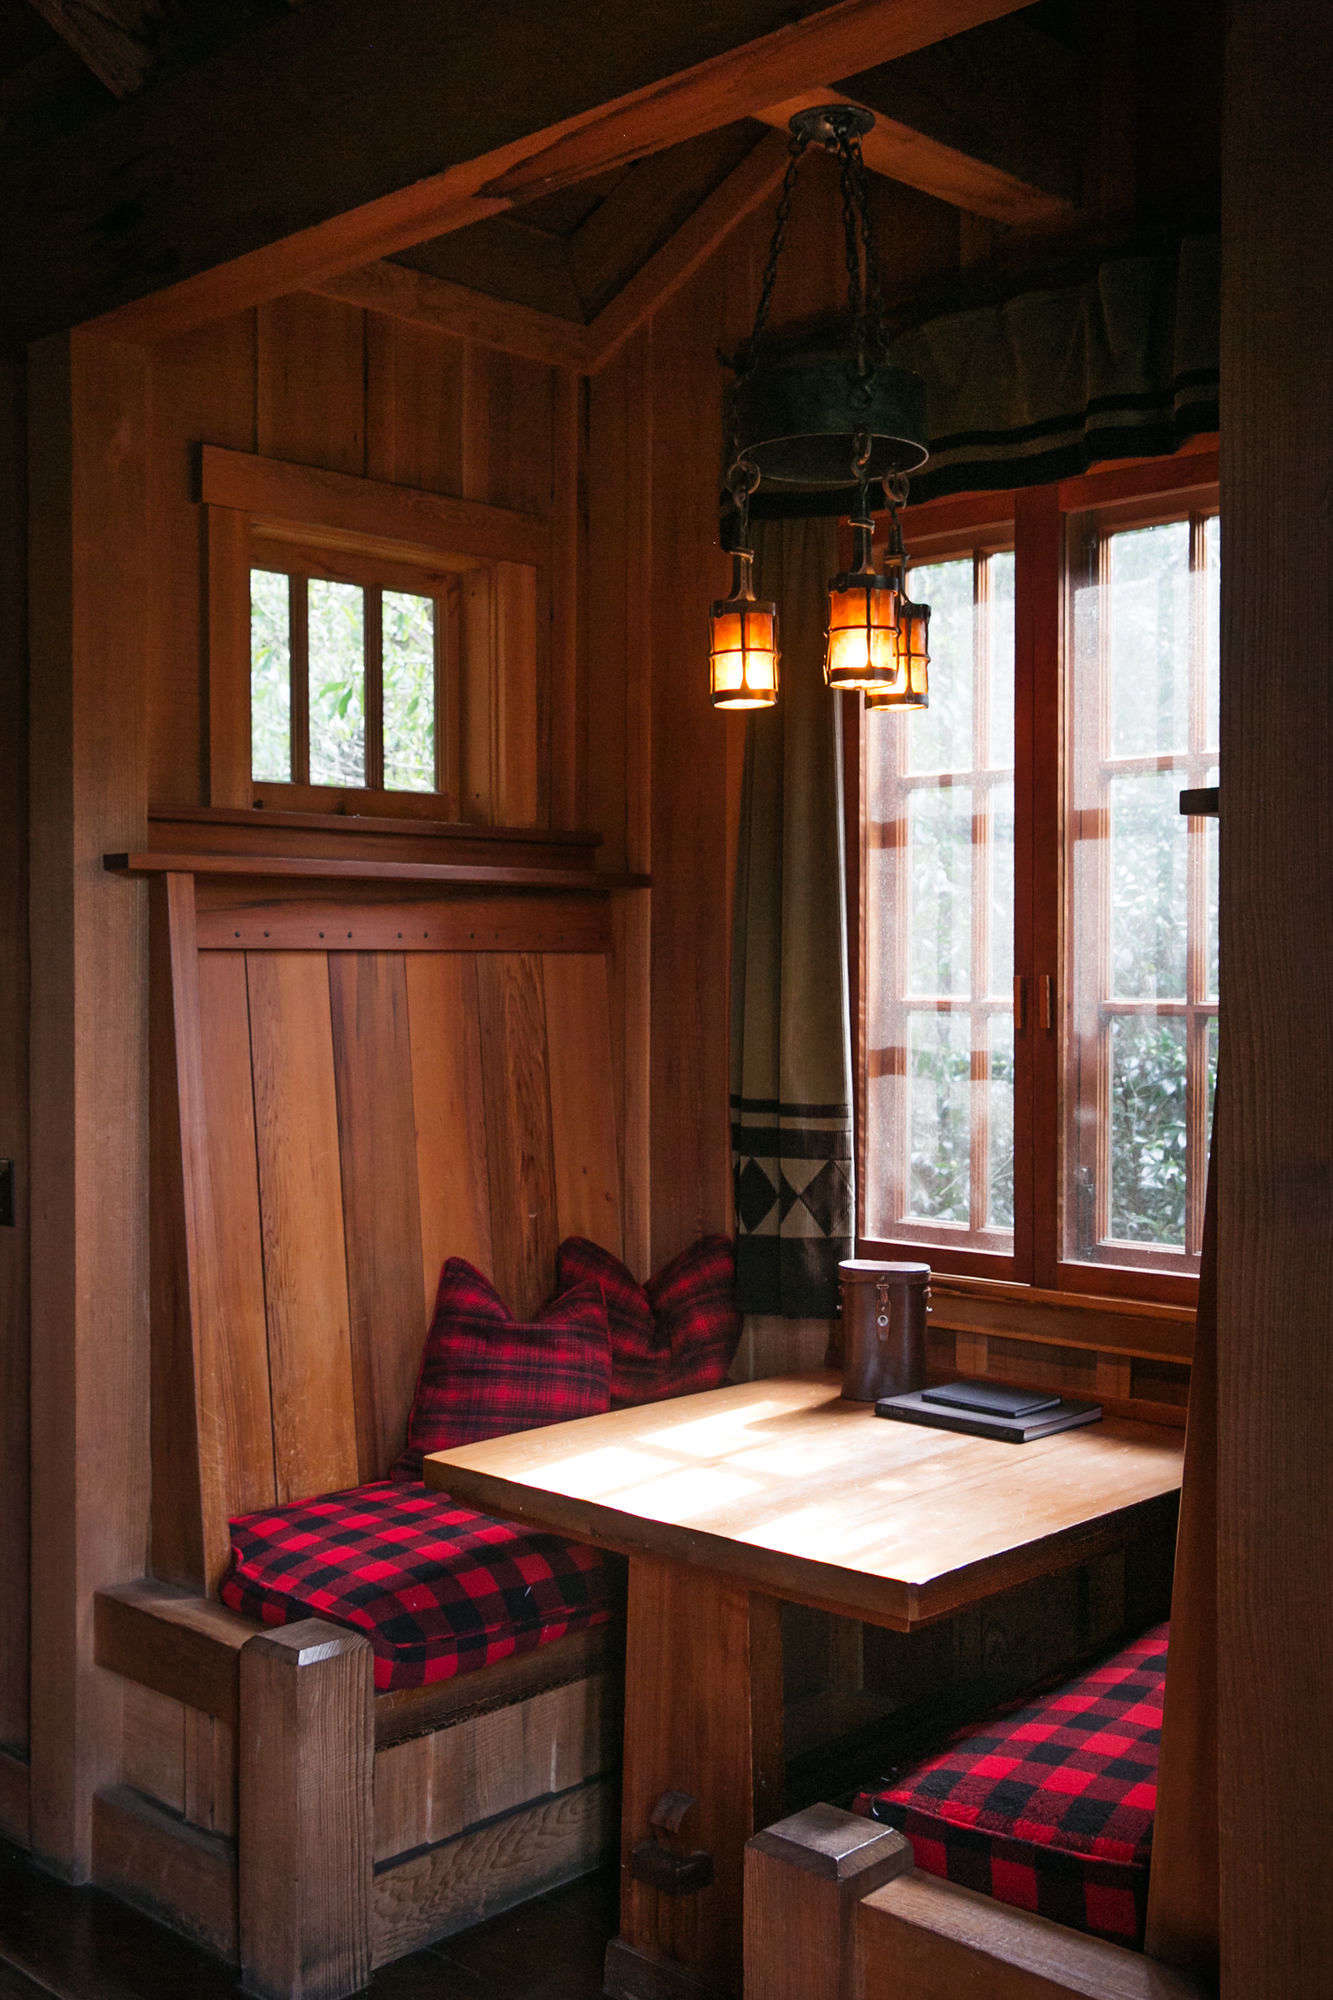 A table and banquettes are built into the back wall of the cabin.